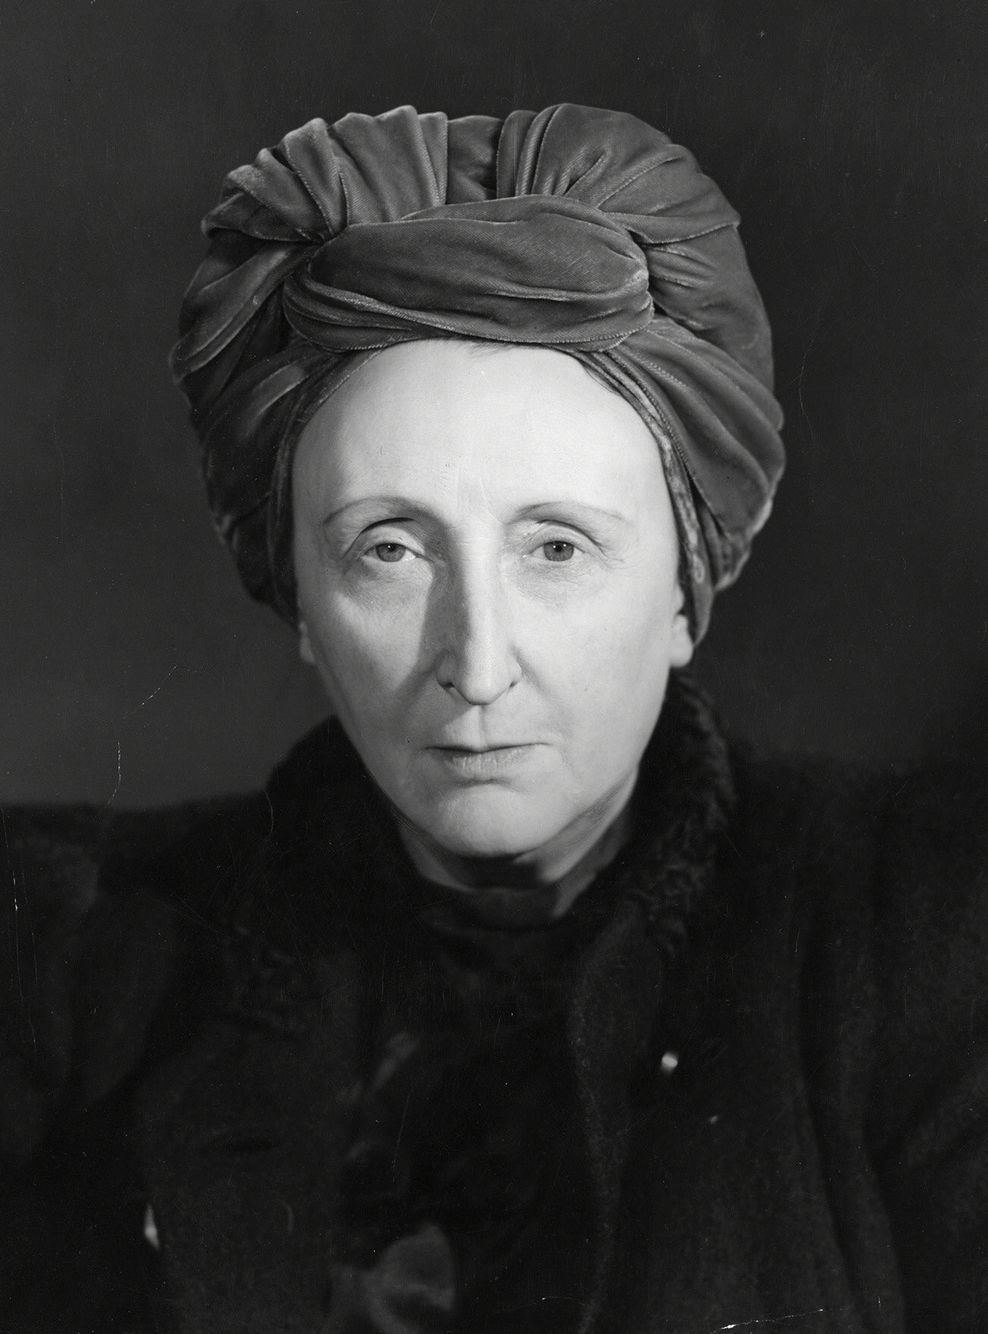 Dame Edith Sitwell photo #8724, Dame Edith Sitwell image